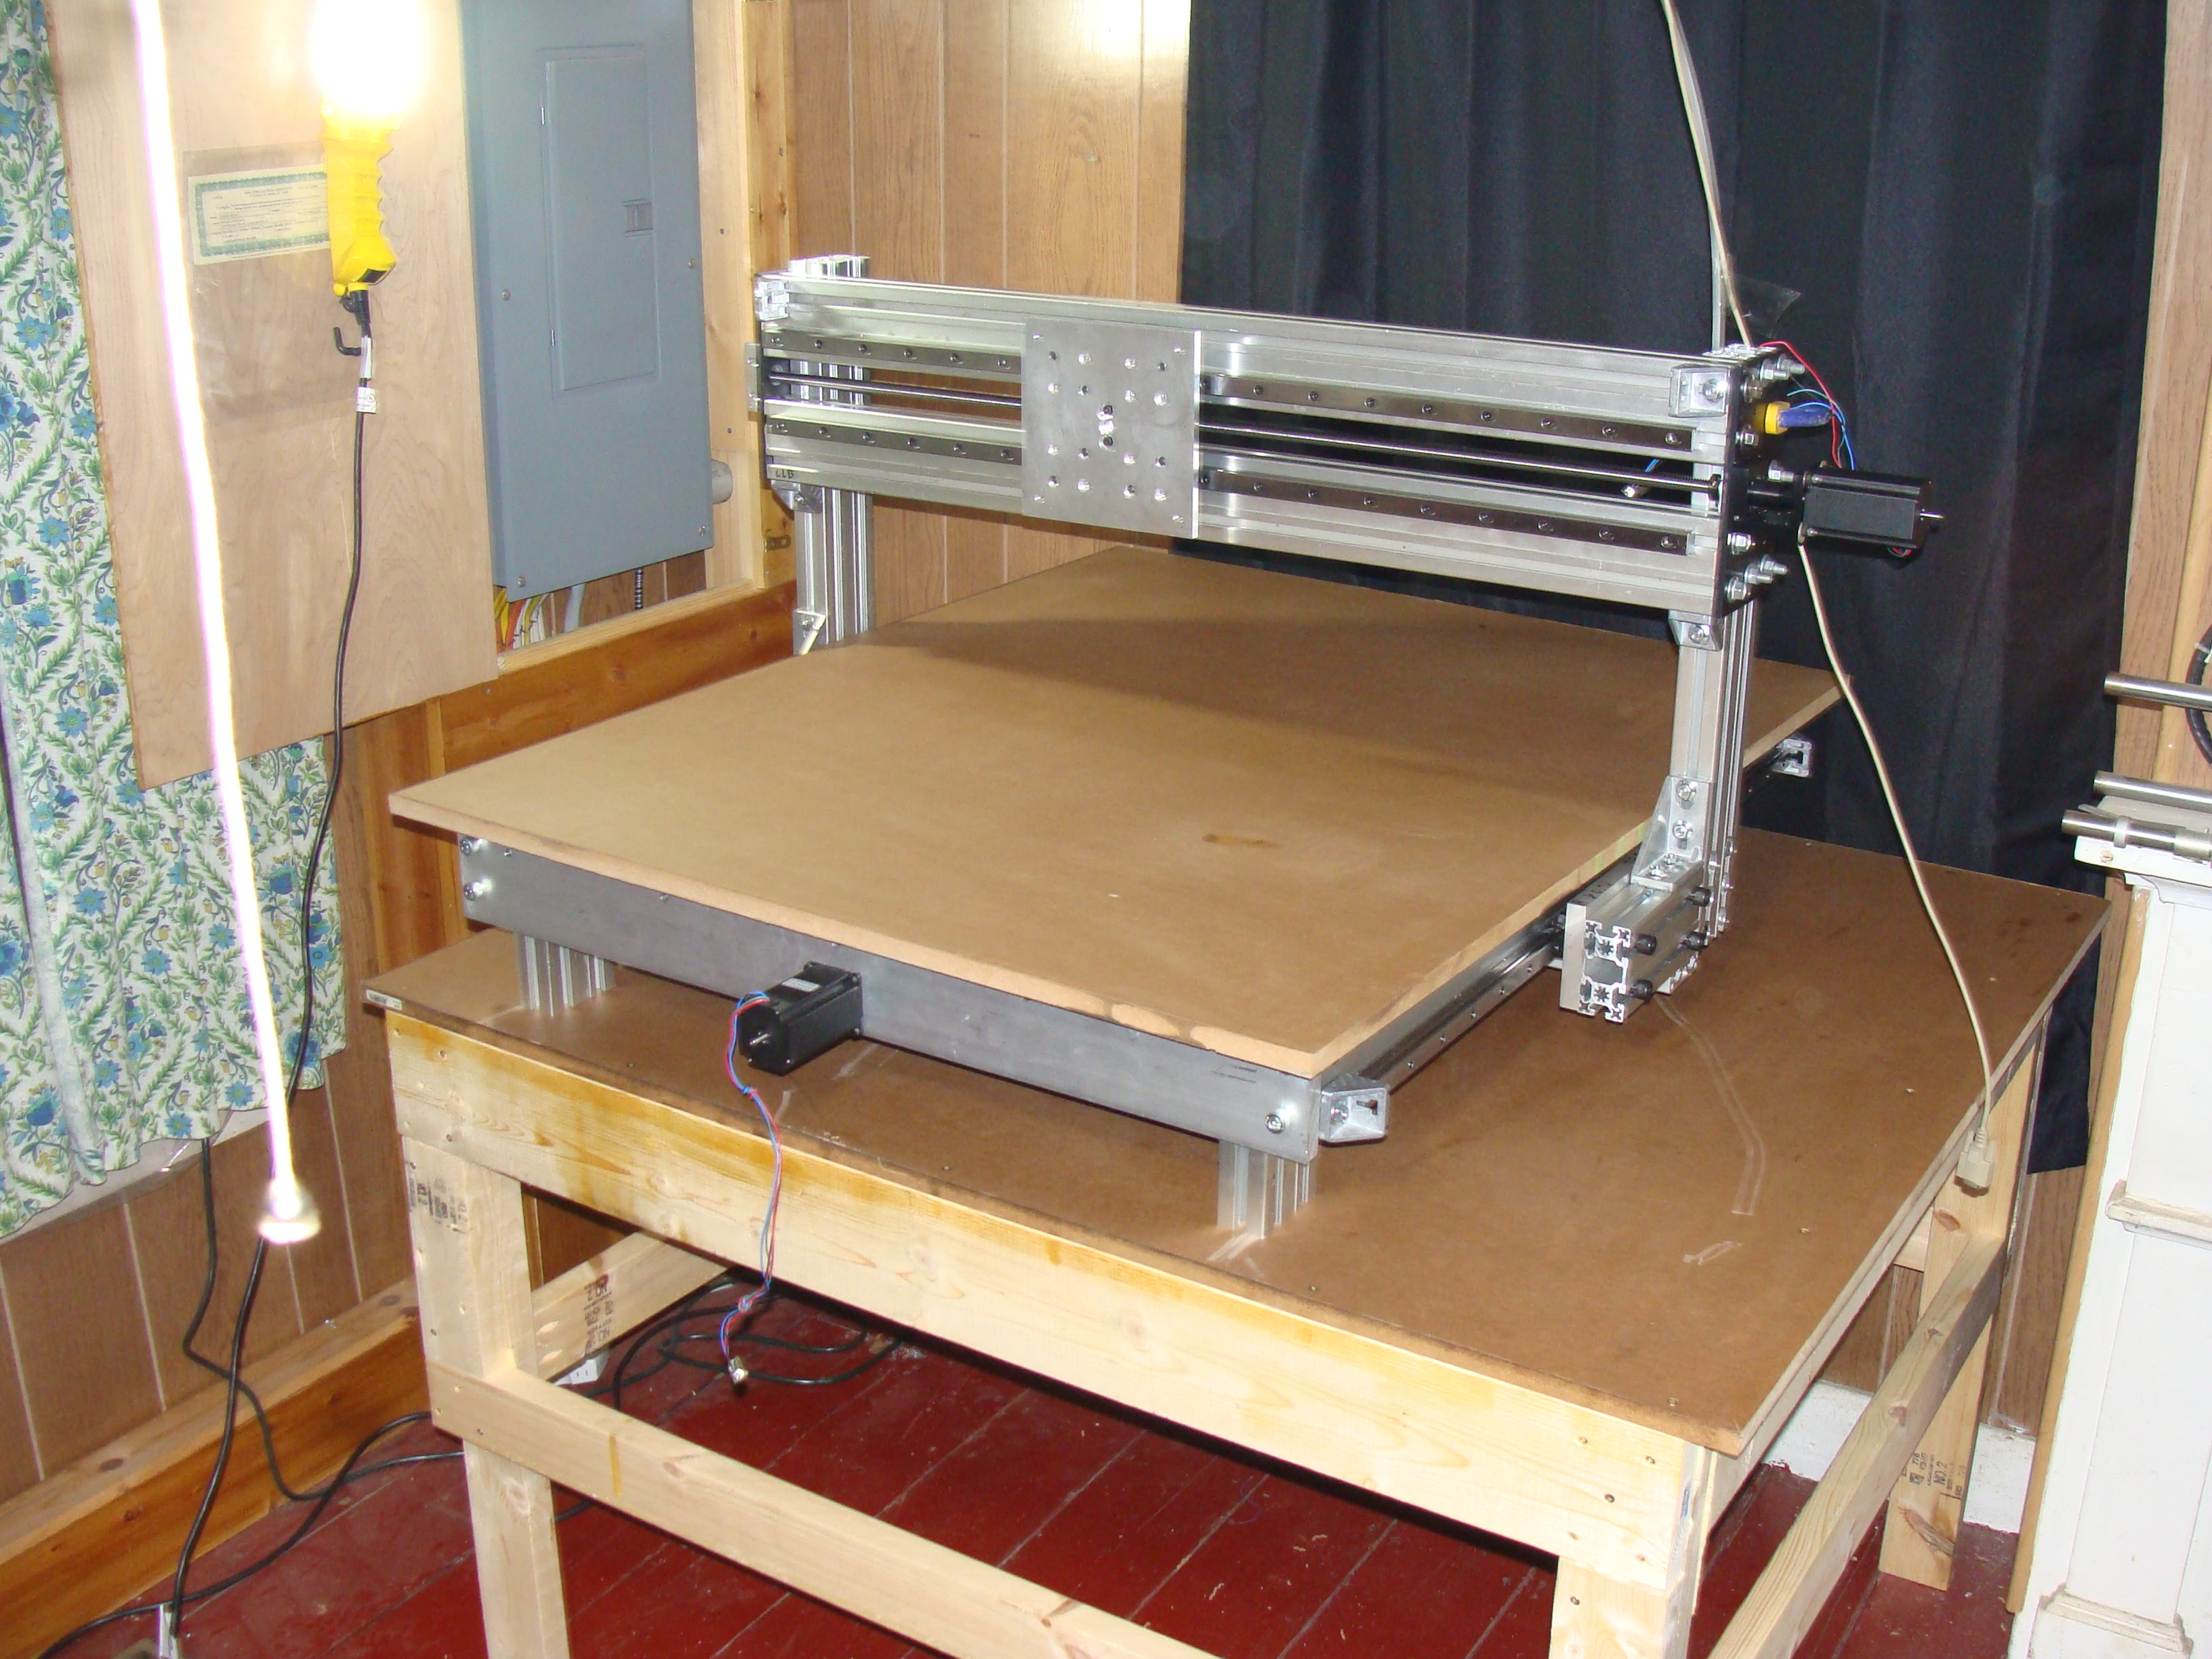 Superb Diy Cnc Router Frame On Table Download Free Architecture Designs Rallybritishbridgeorg